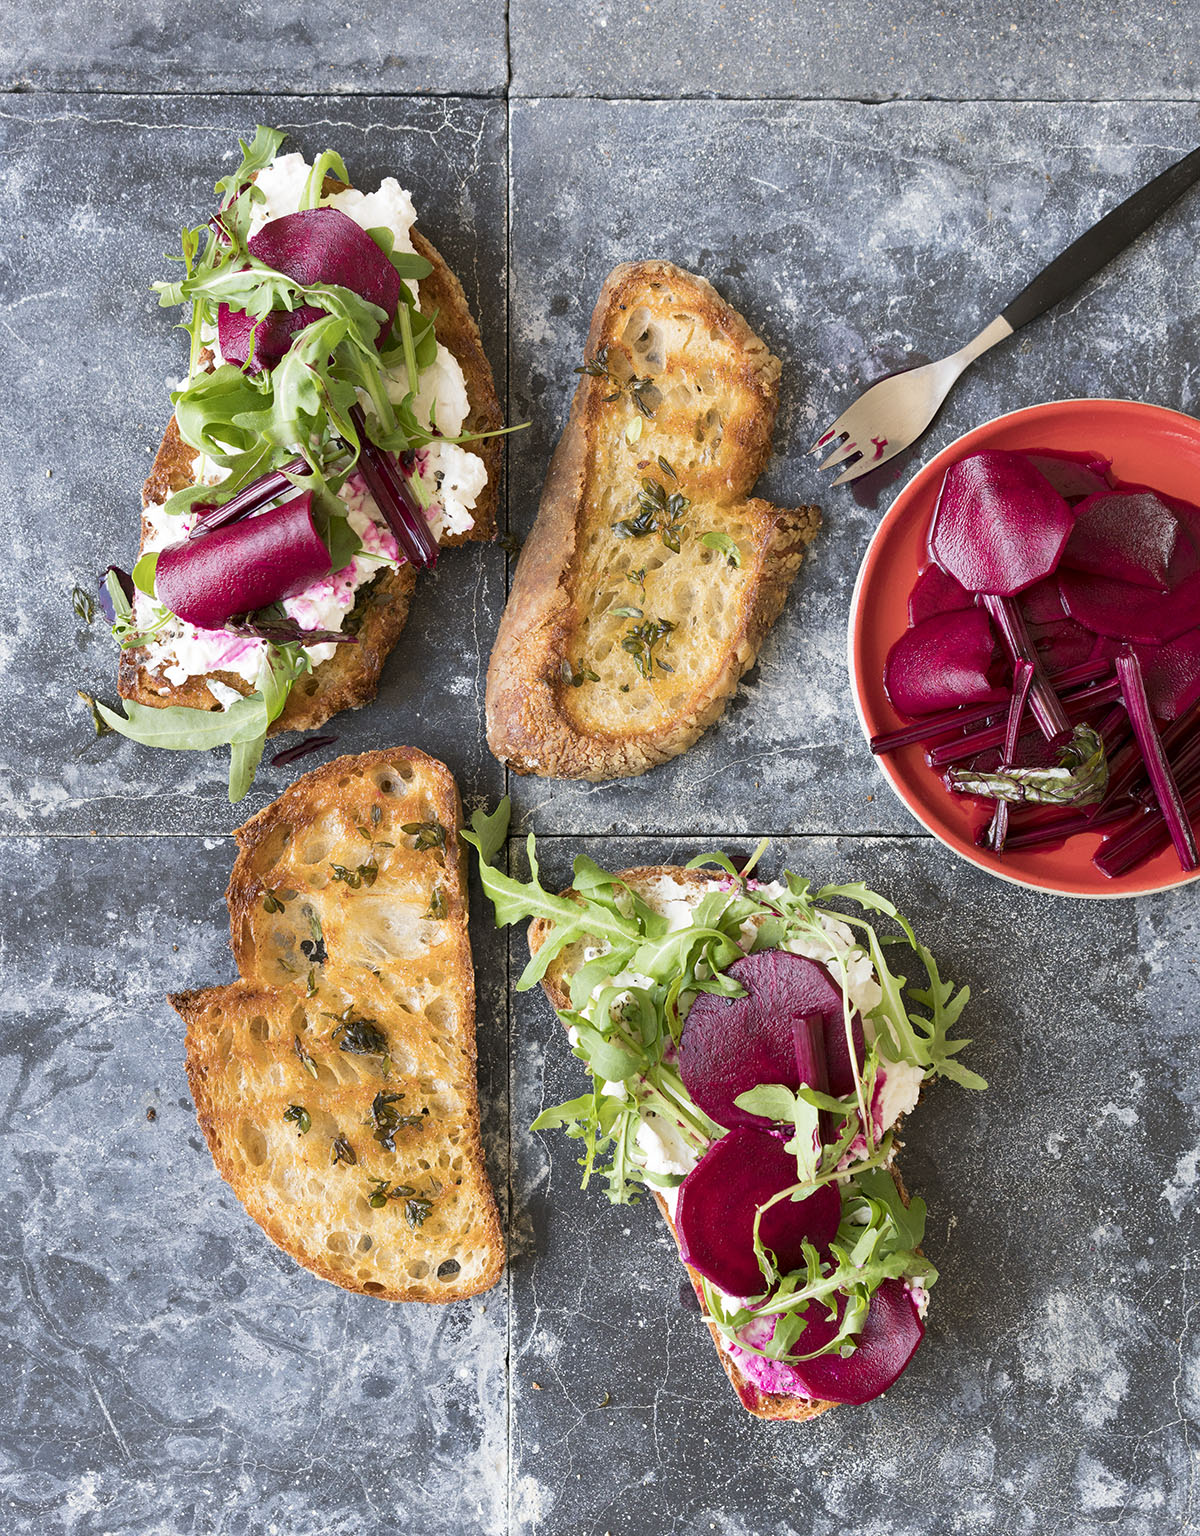 Goats_cheese_and_pickled_beetroot--1_2